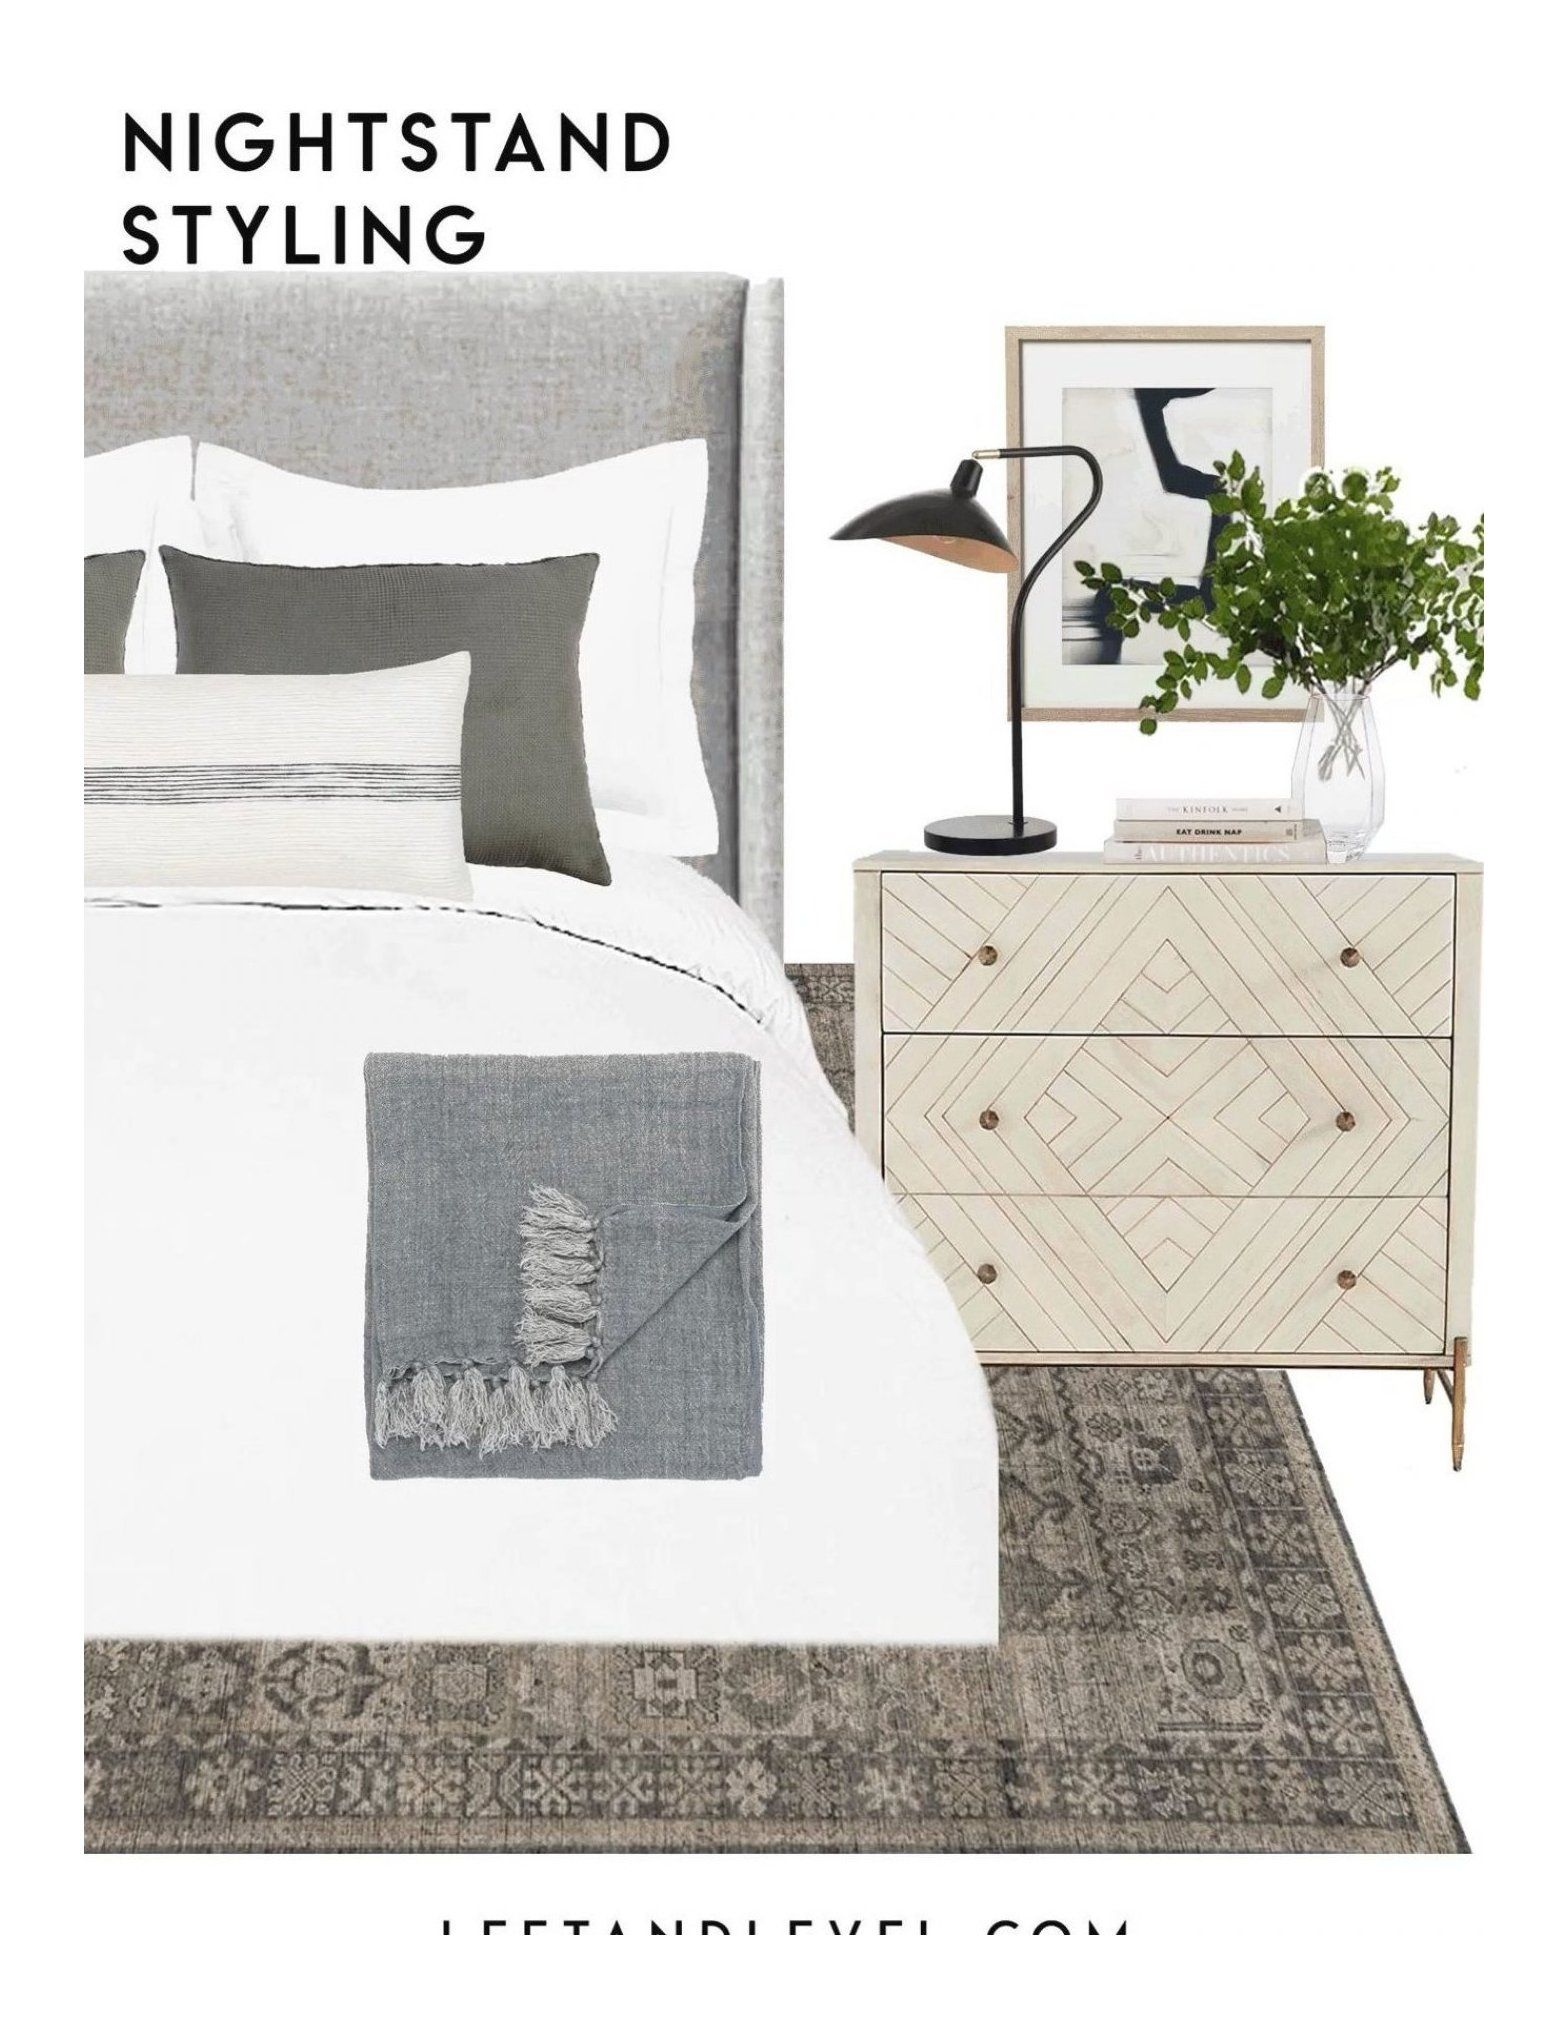 Diy Einrichtungsideen How To Style Your Nightstand Einrichtungsideen Schlafzimmer Bett, Einrichtungsideen Schlafzimmer Grau,… In 2020 | Chic Nightstand, Nightstand Decor, Bedroom Nightstand Decor